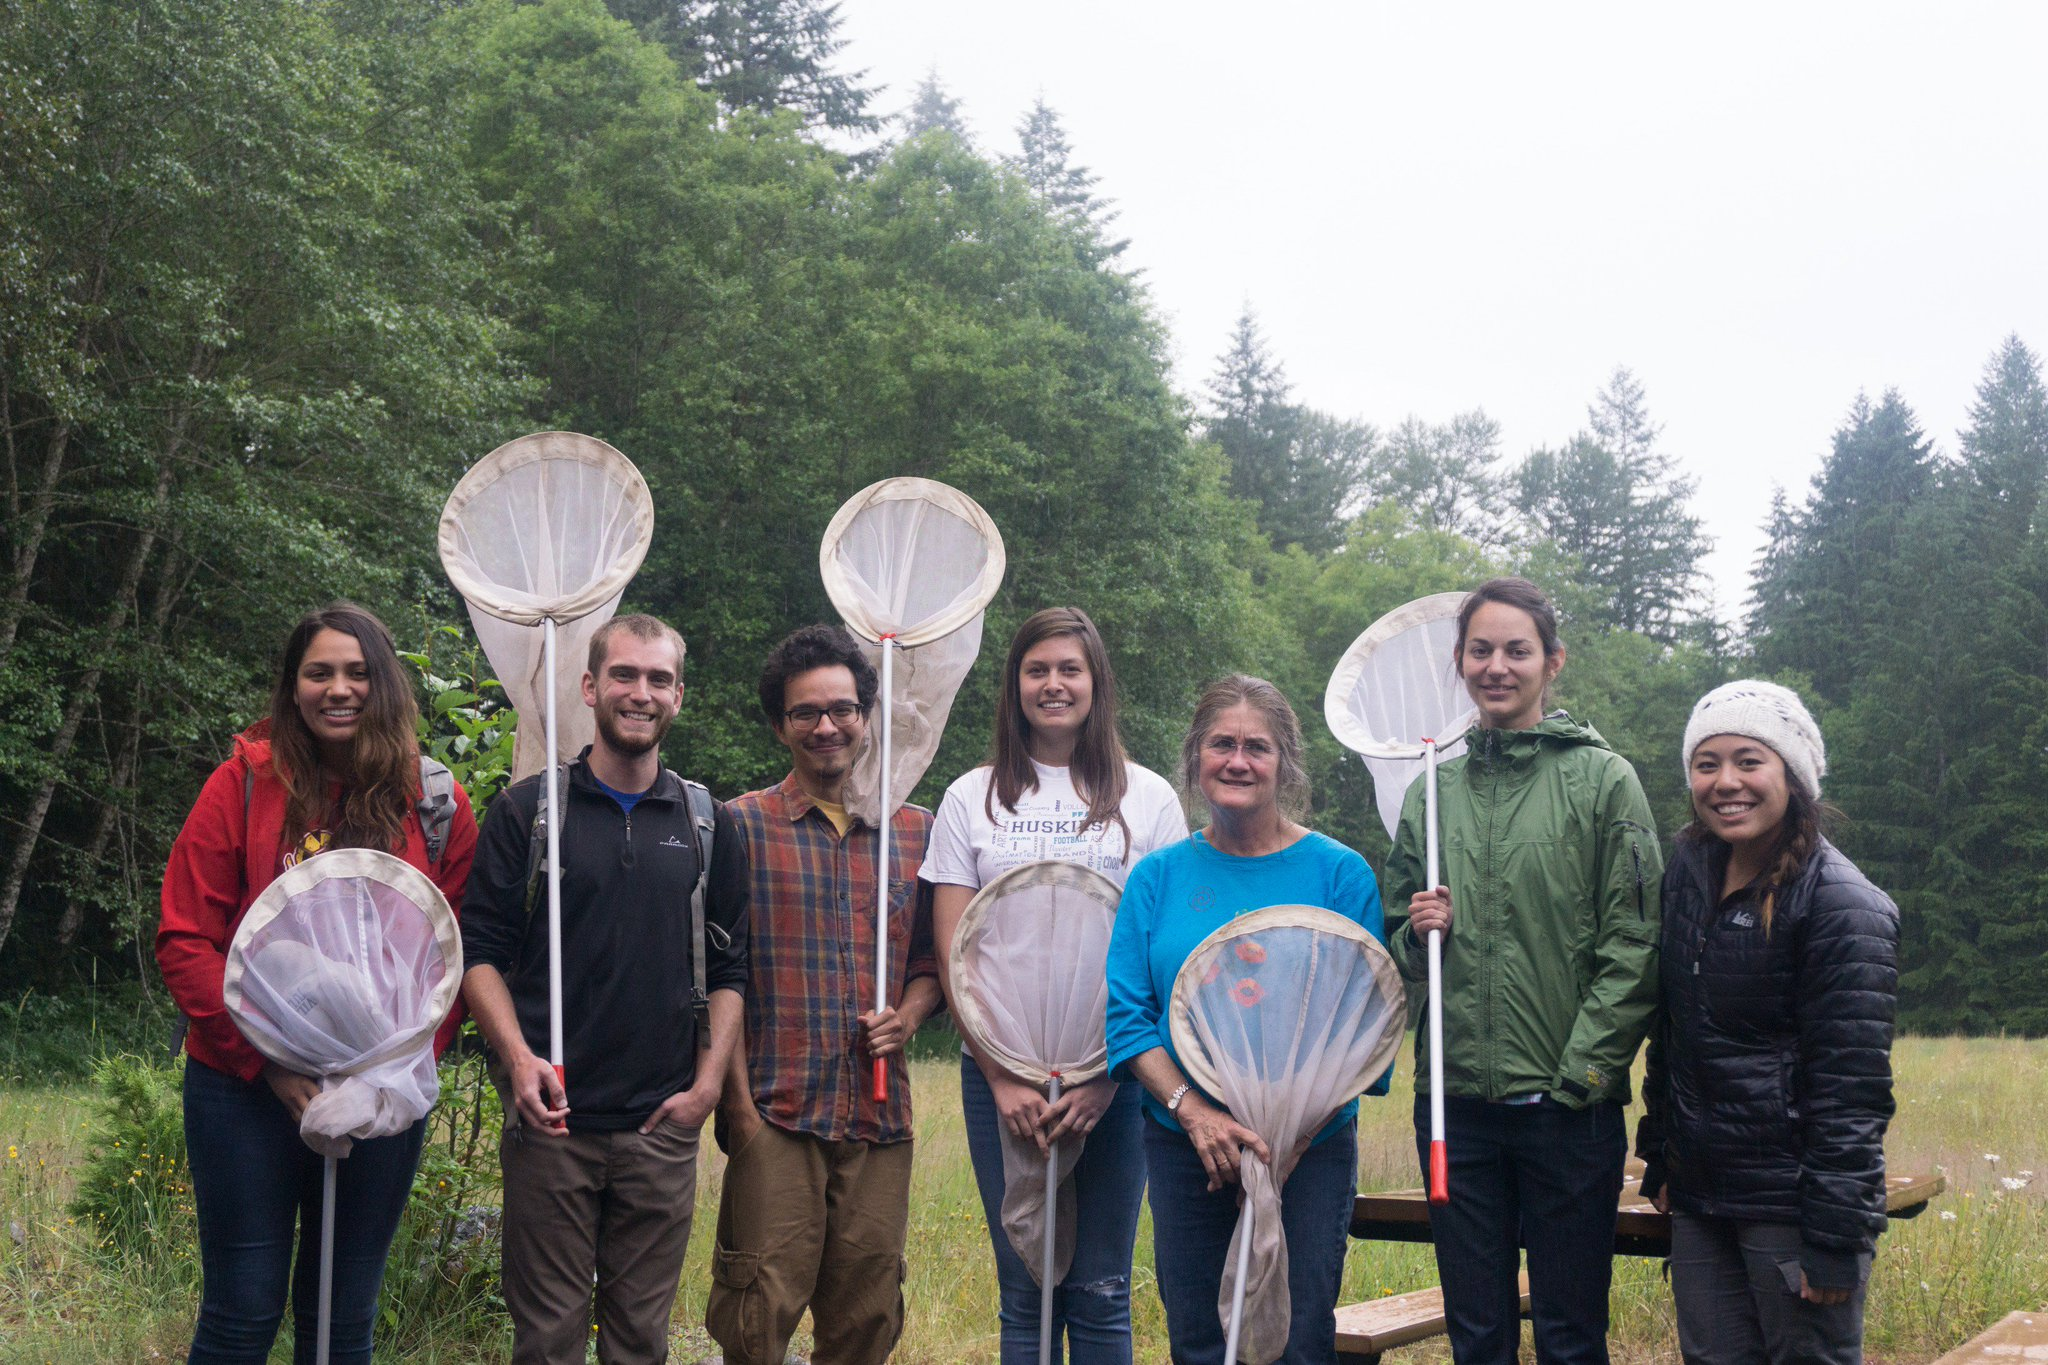 Regina Rochefort and citizen scientists pose with their butterfly nets.